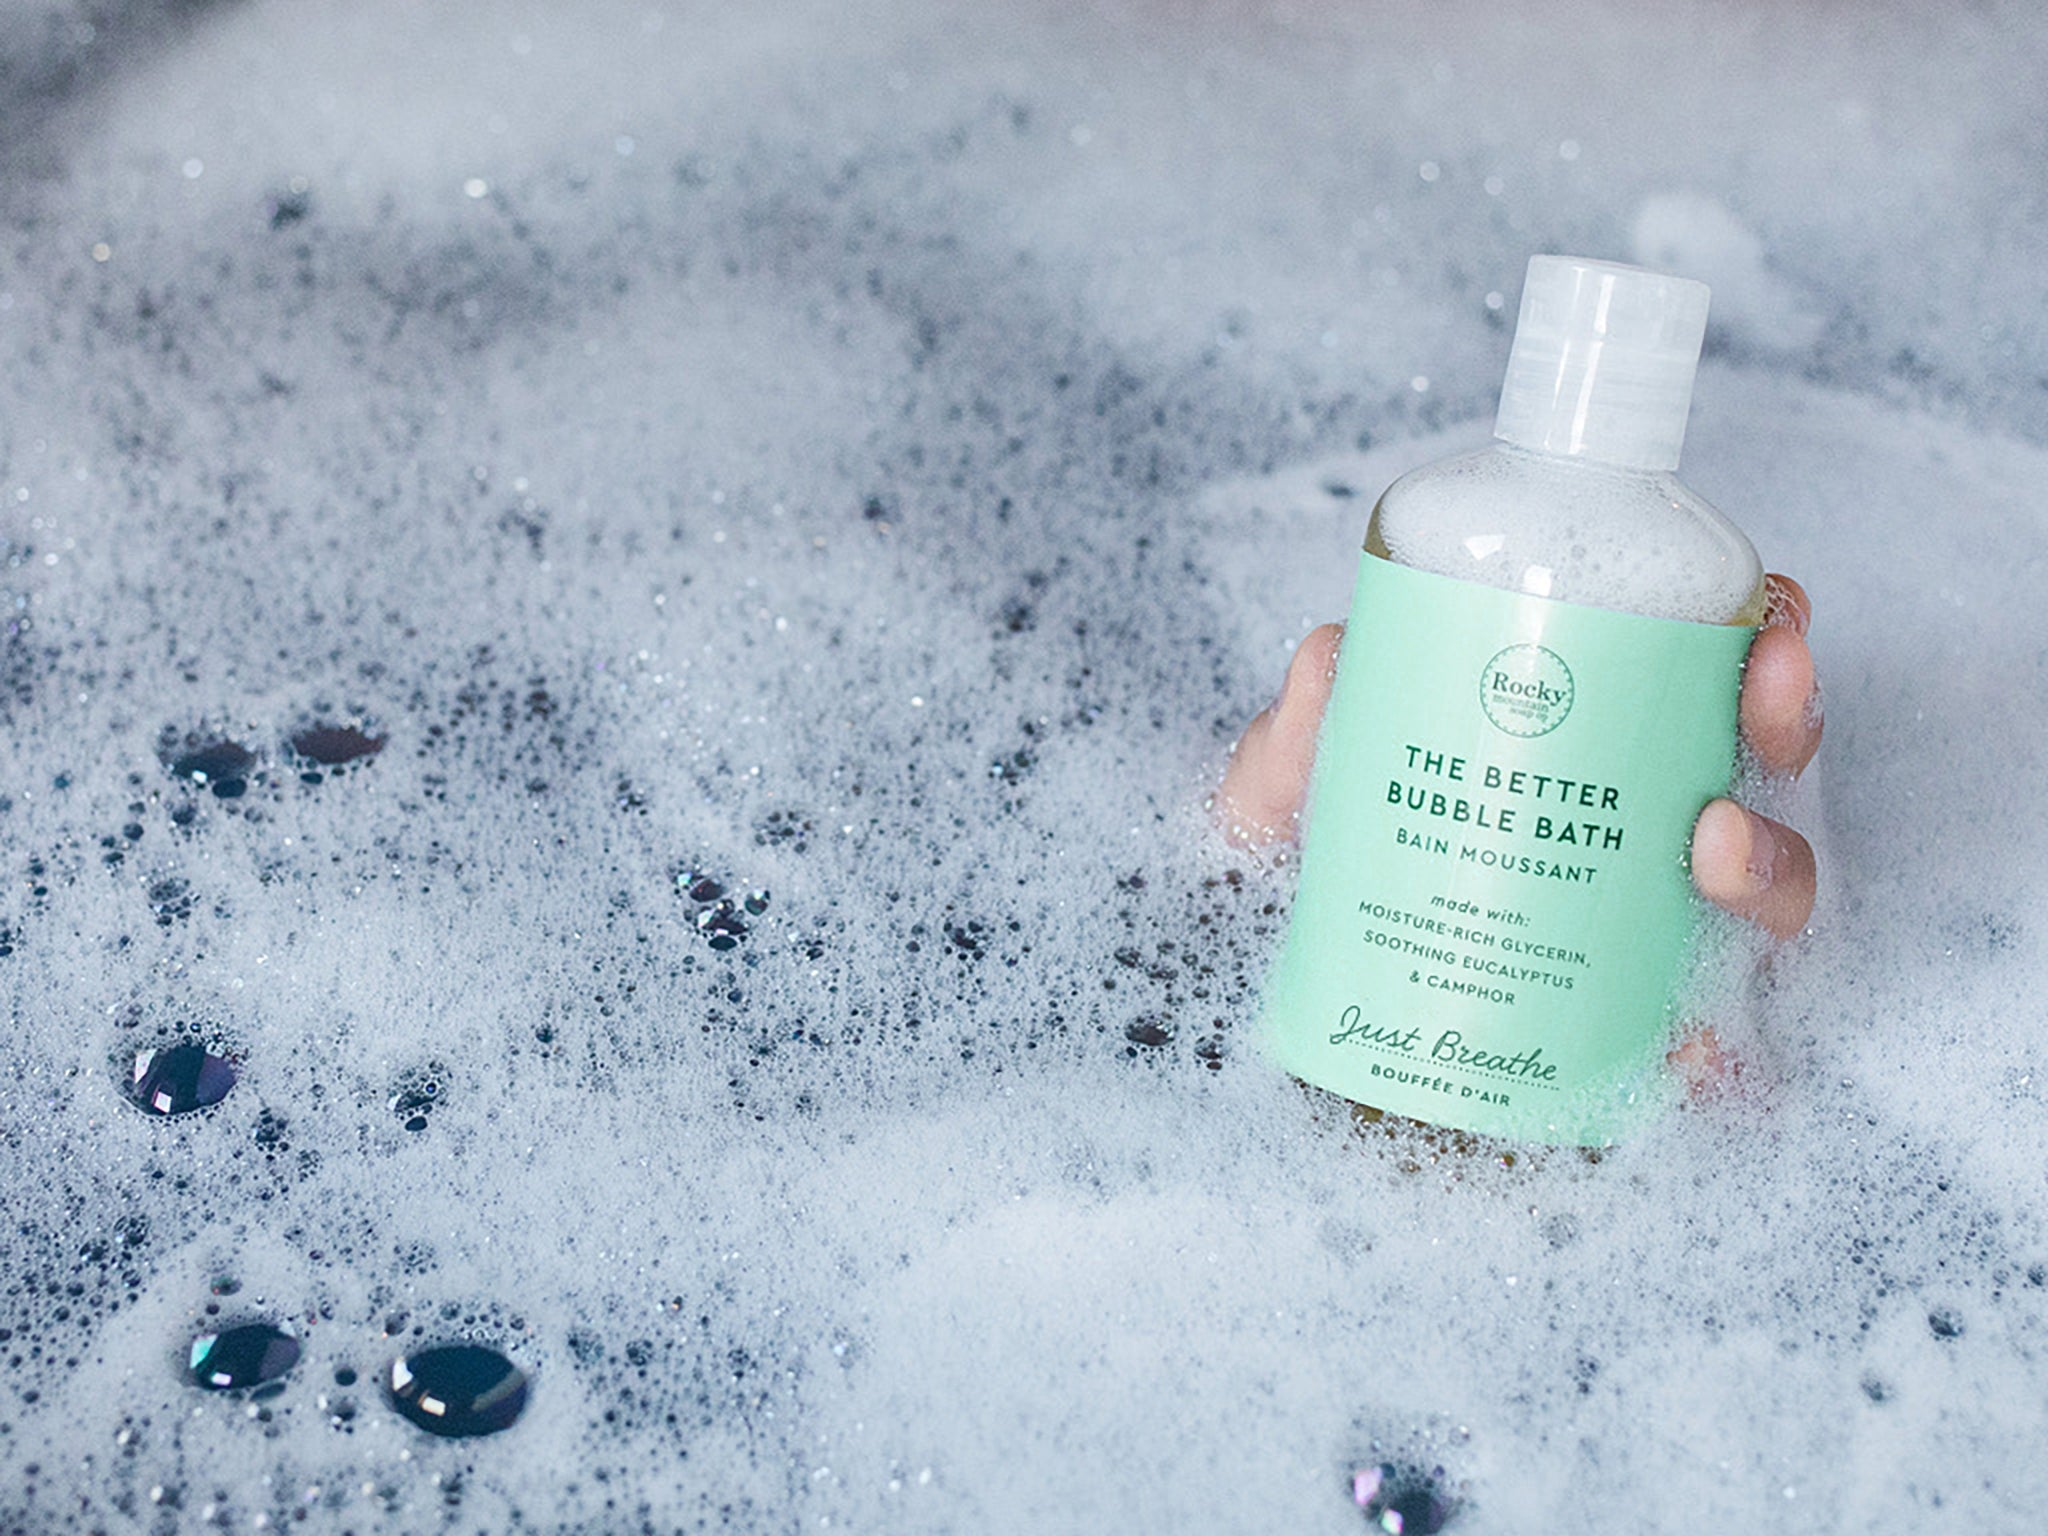 Image of hand holding natural bubble bath in tub surrounded by suds.